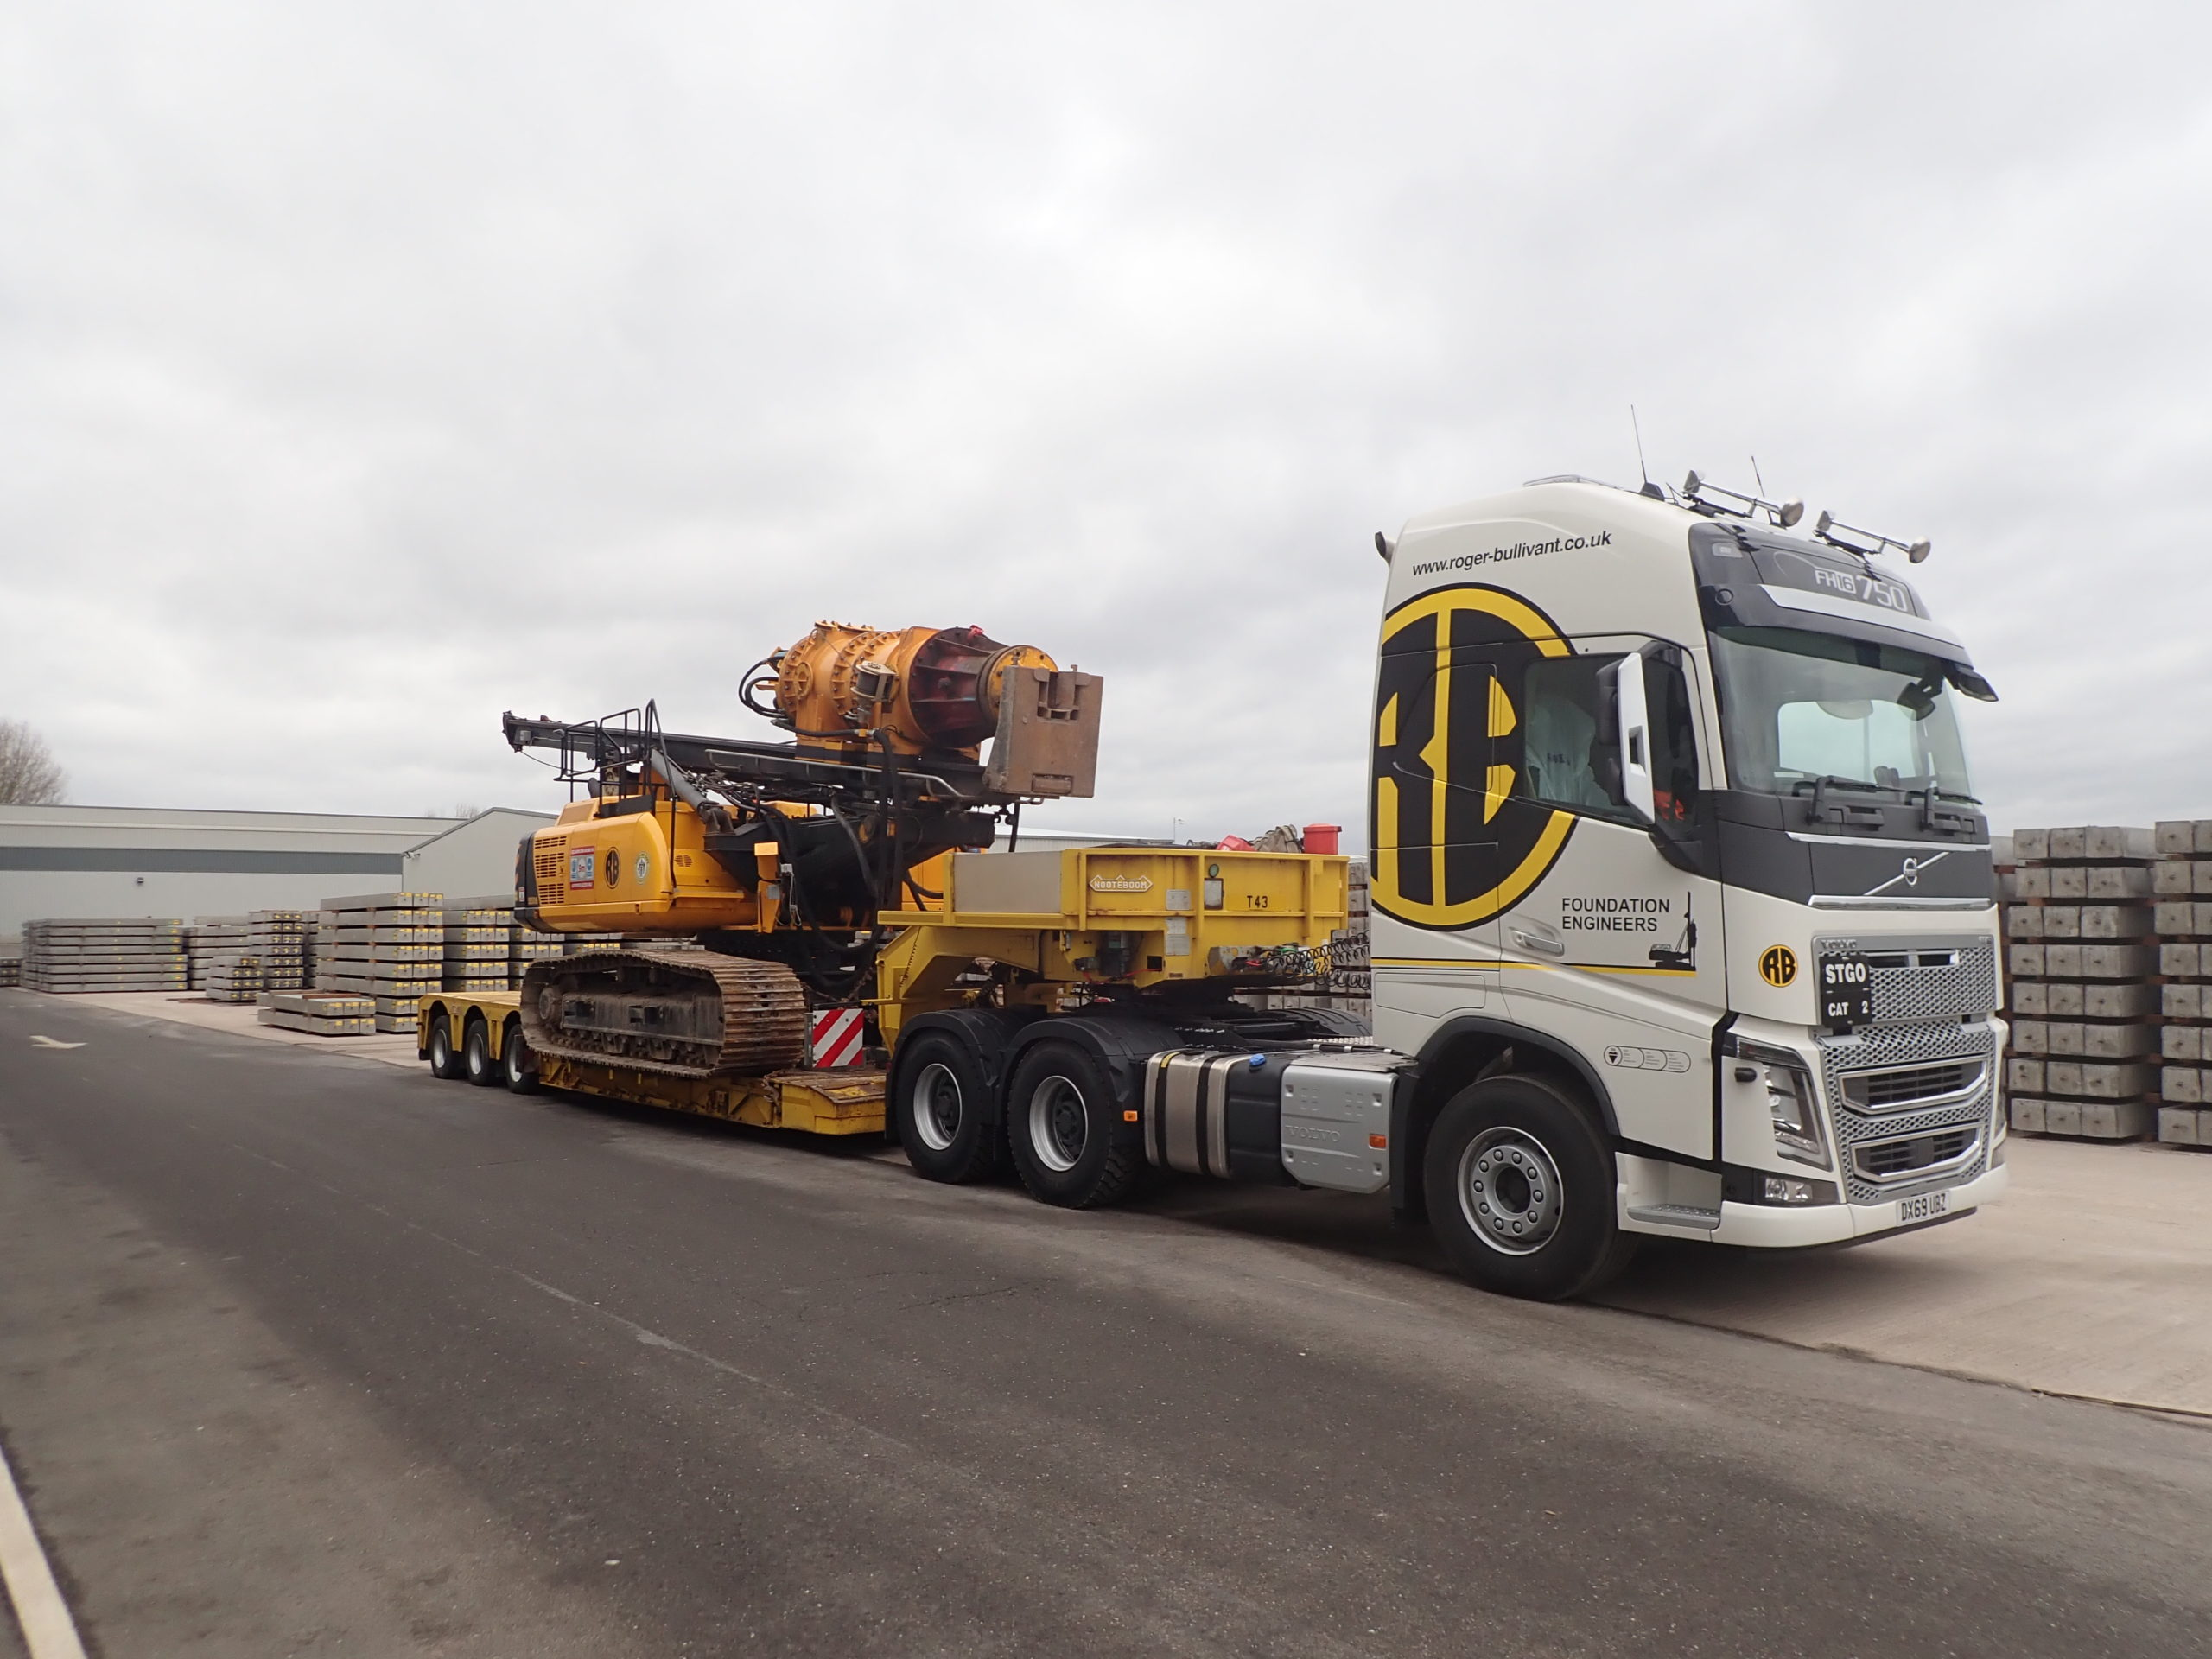 Piling Rig on Roger Bullivant Low Loader